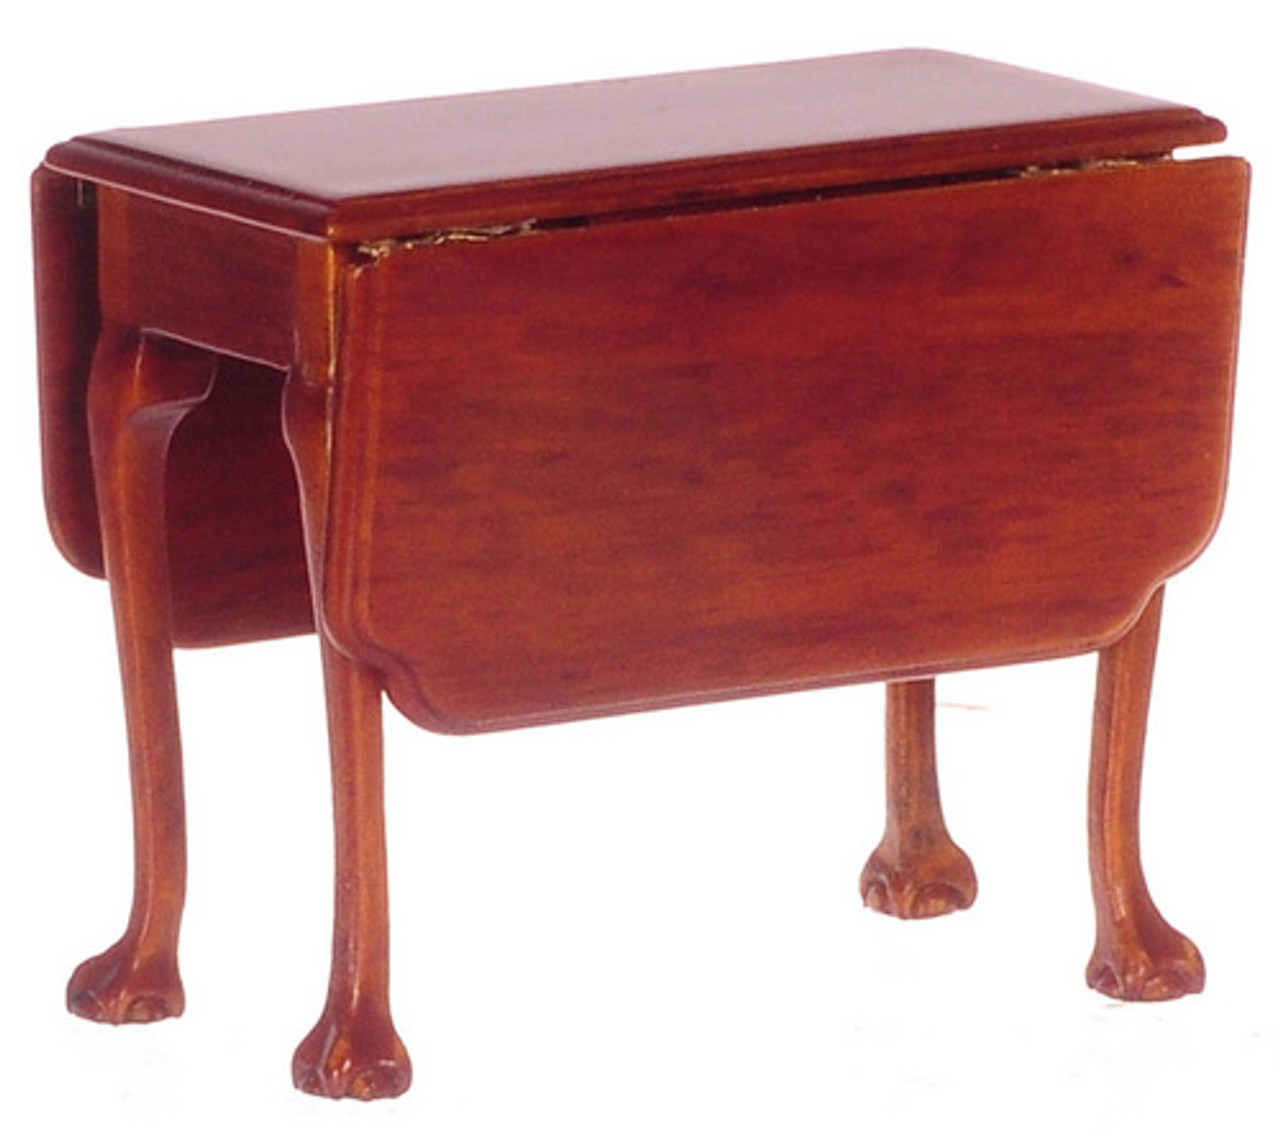 Jefferson Drop-Leaf Table